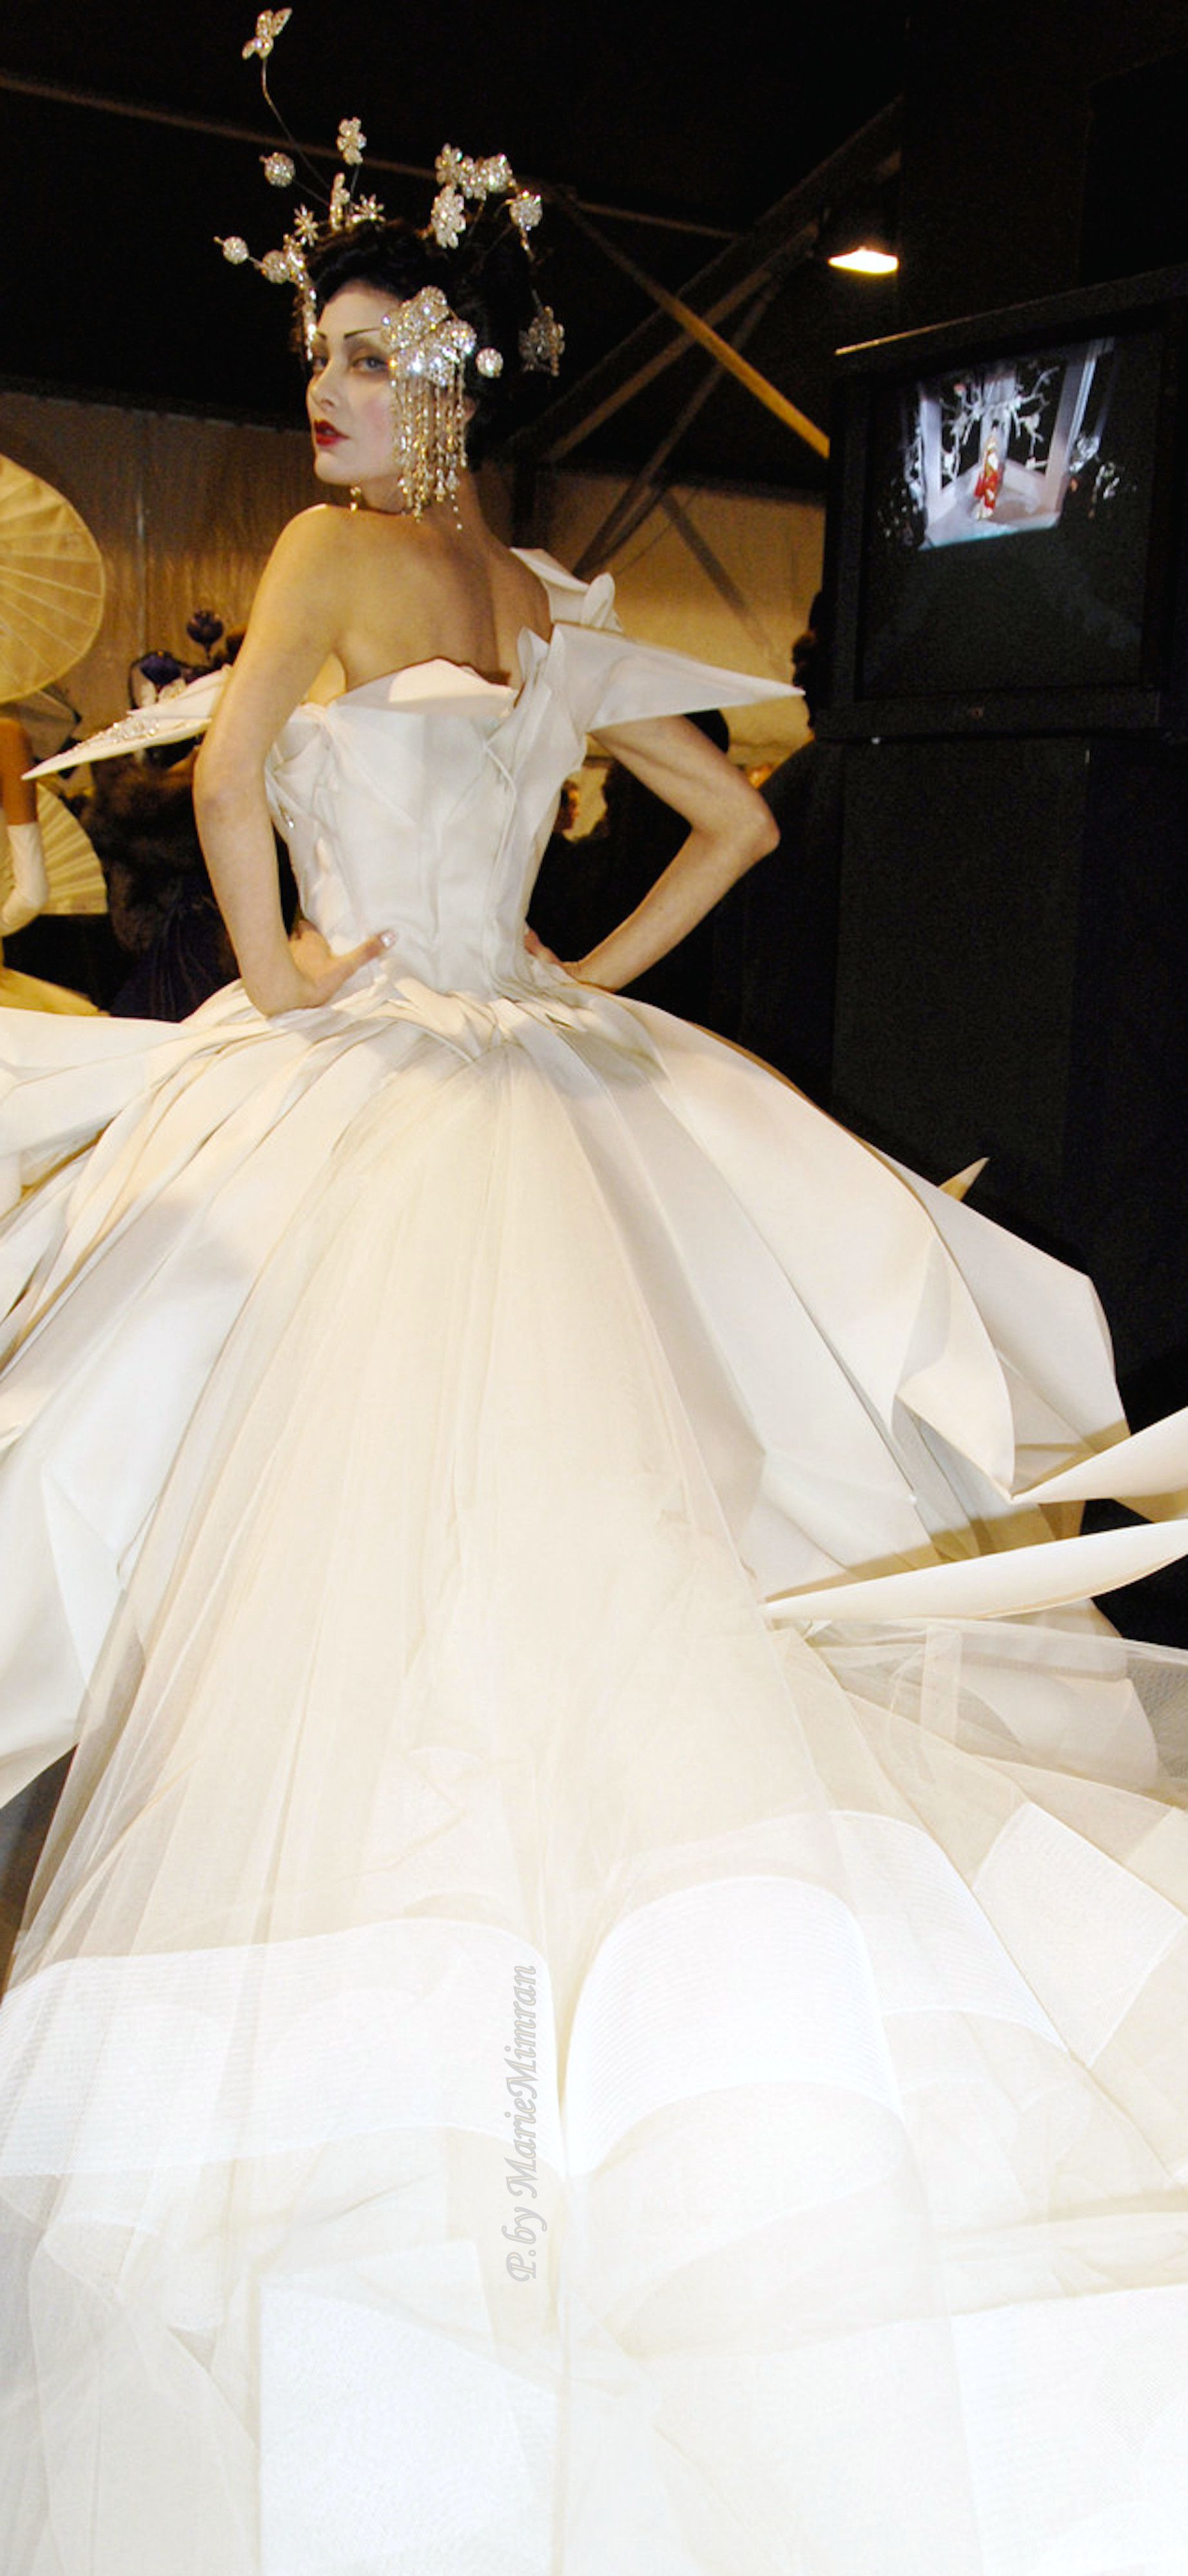 Christian Dior-Galliano | Dior | Pinterest